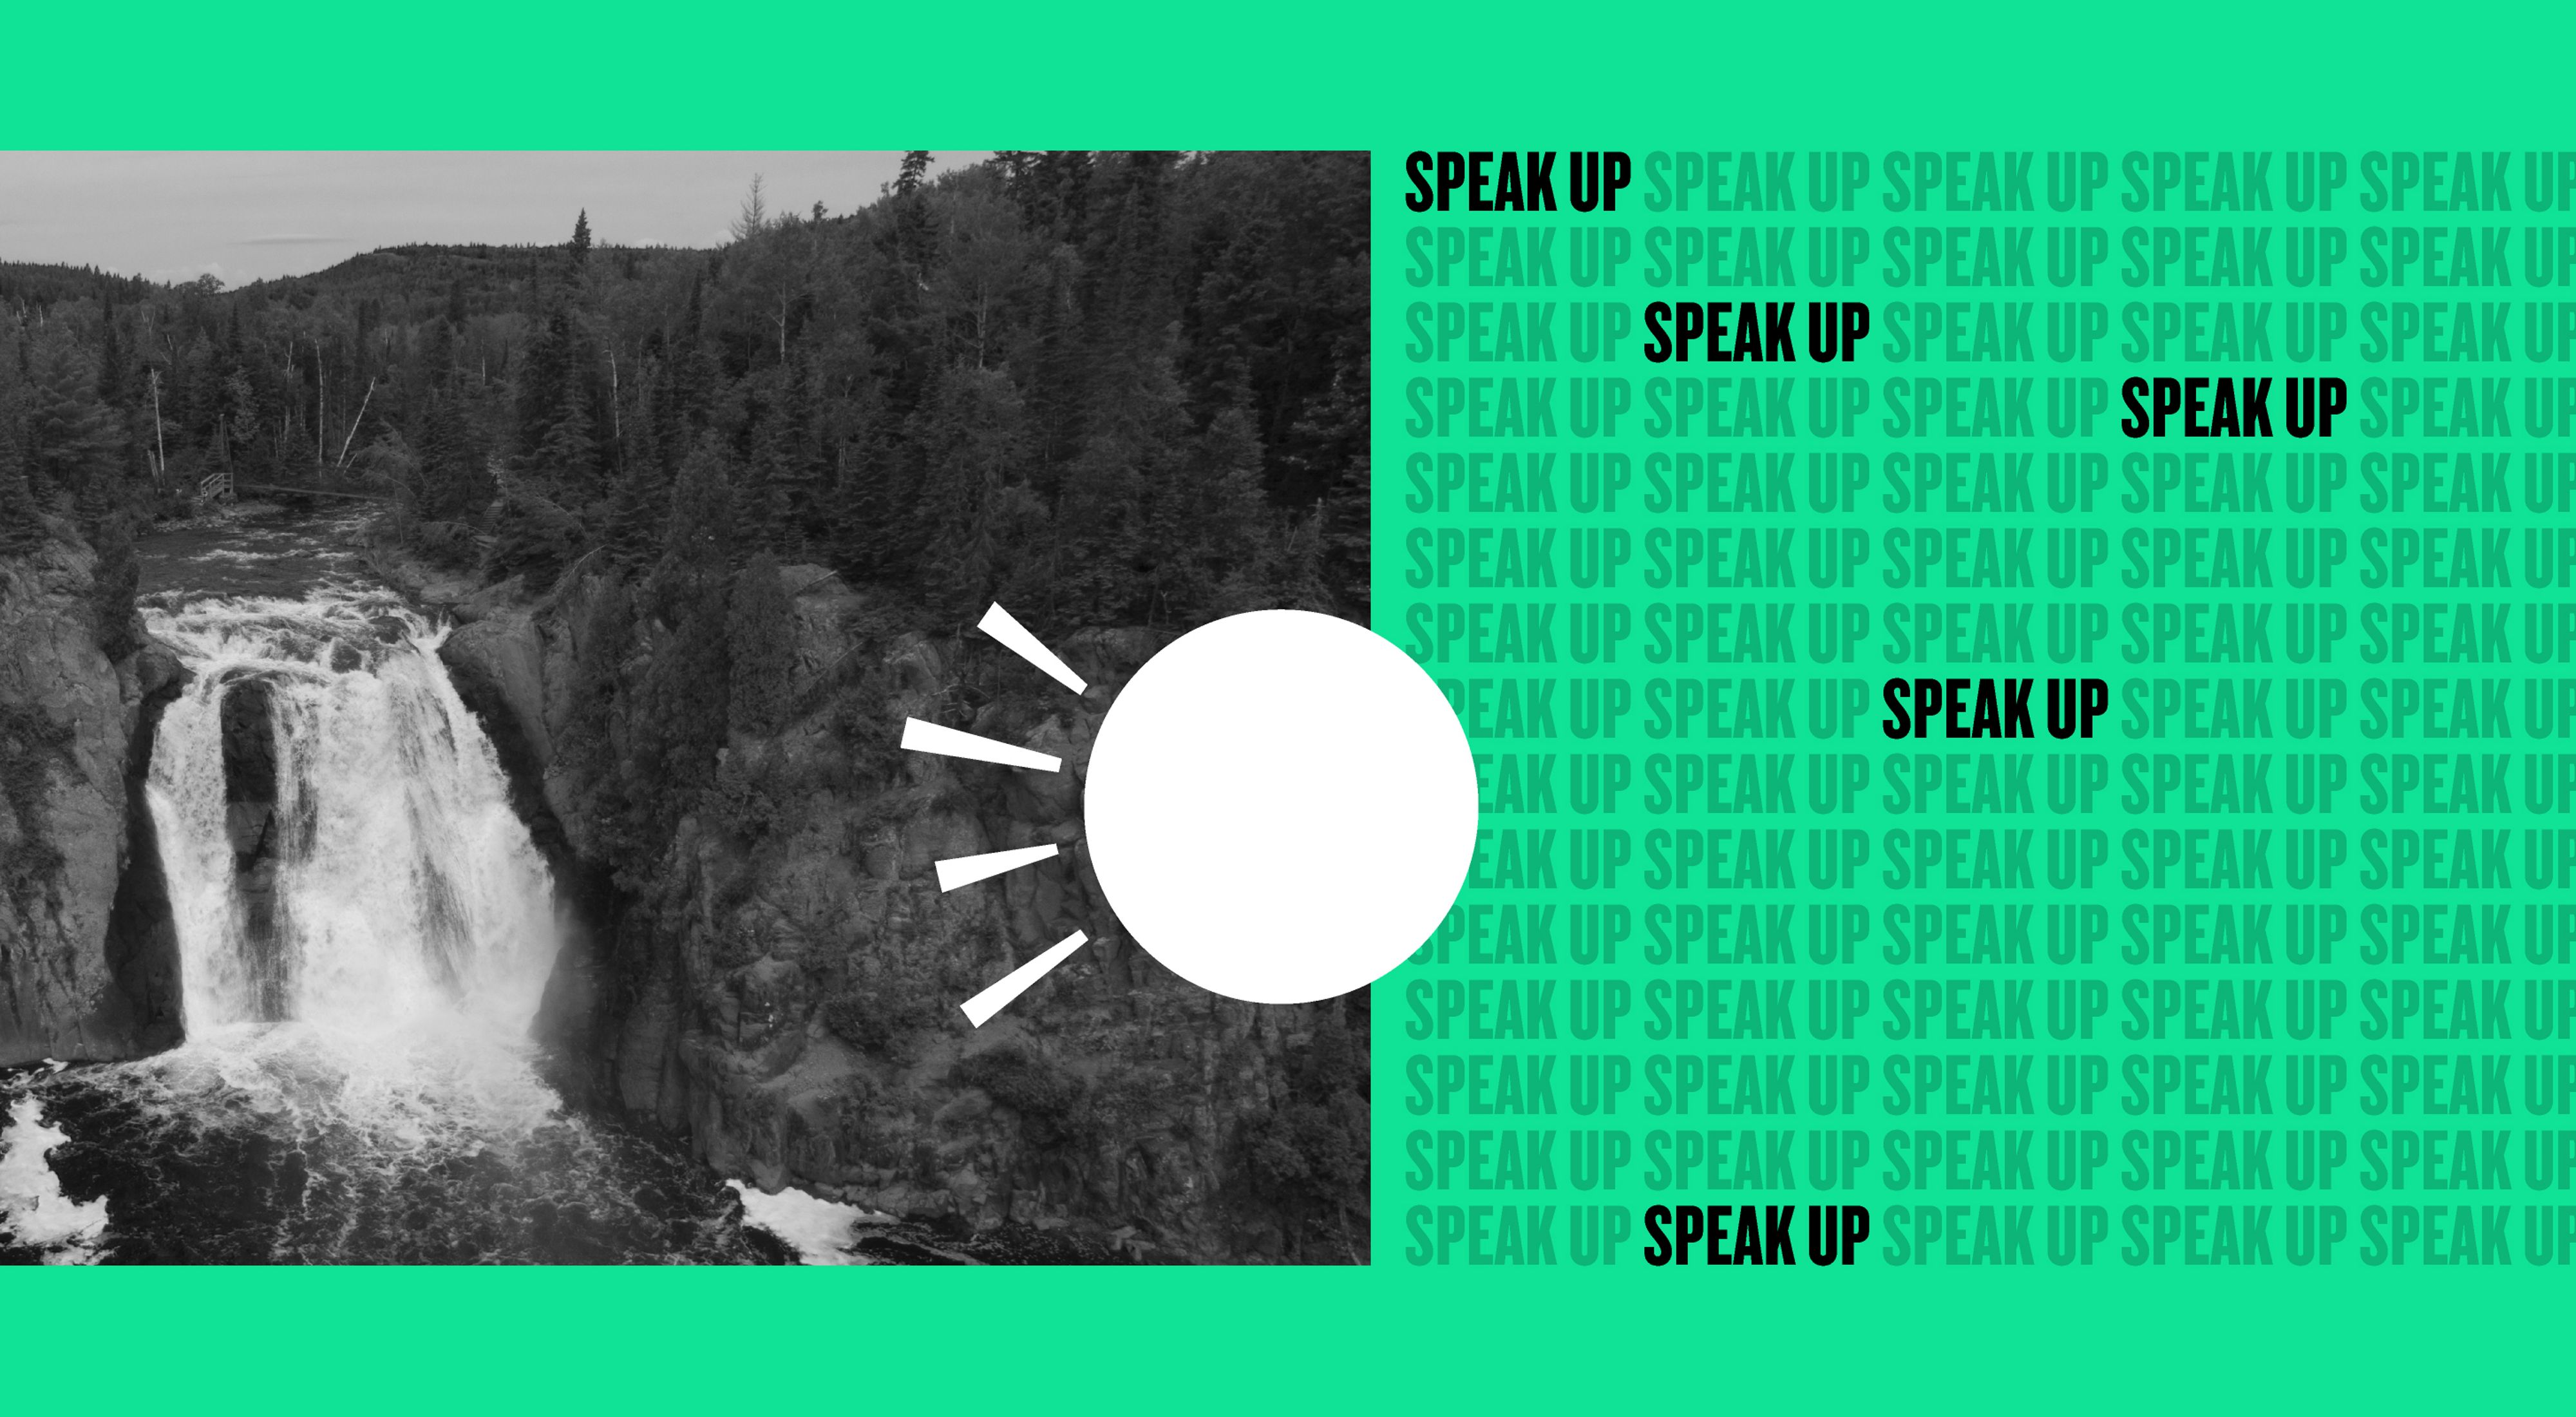 A graphic with a black and white photo of a waterfall on one side and the words 'speak up' repeated on a green background on the right.